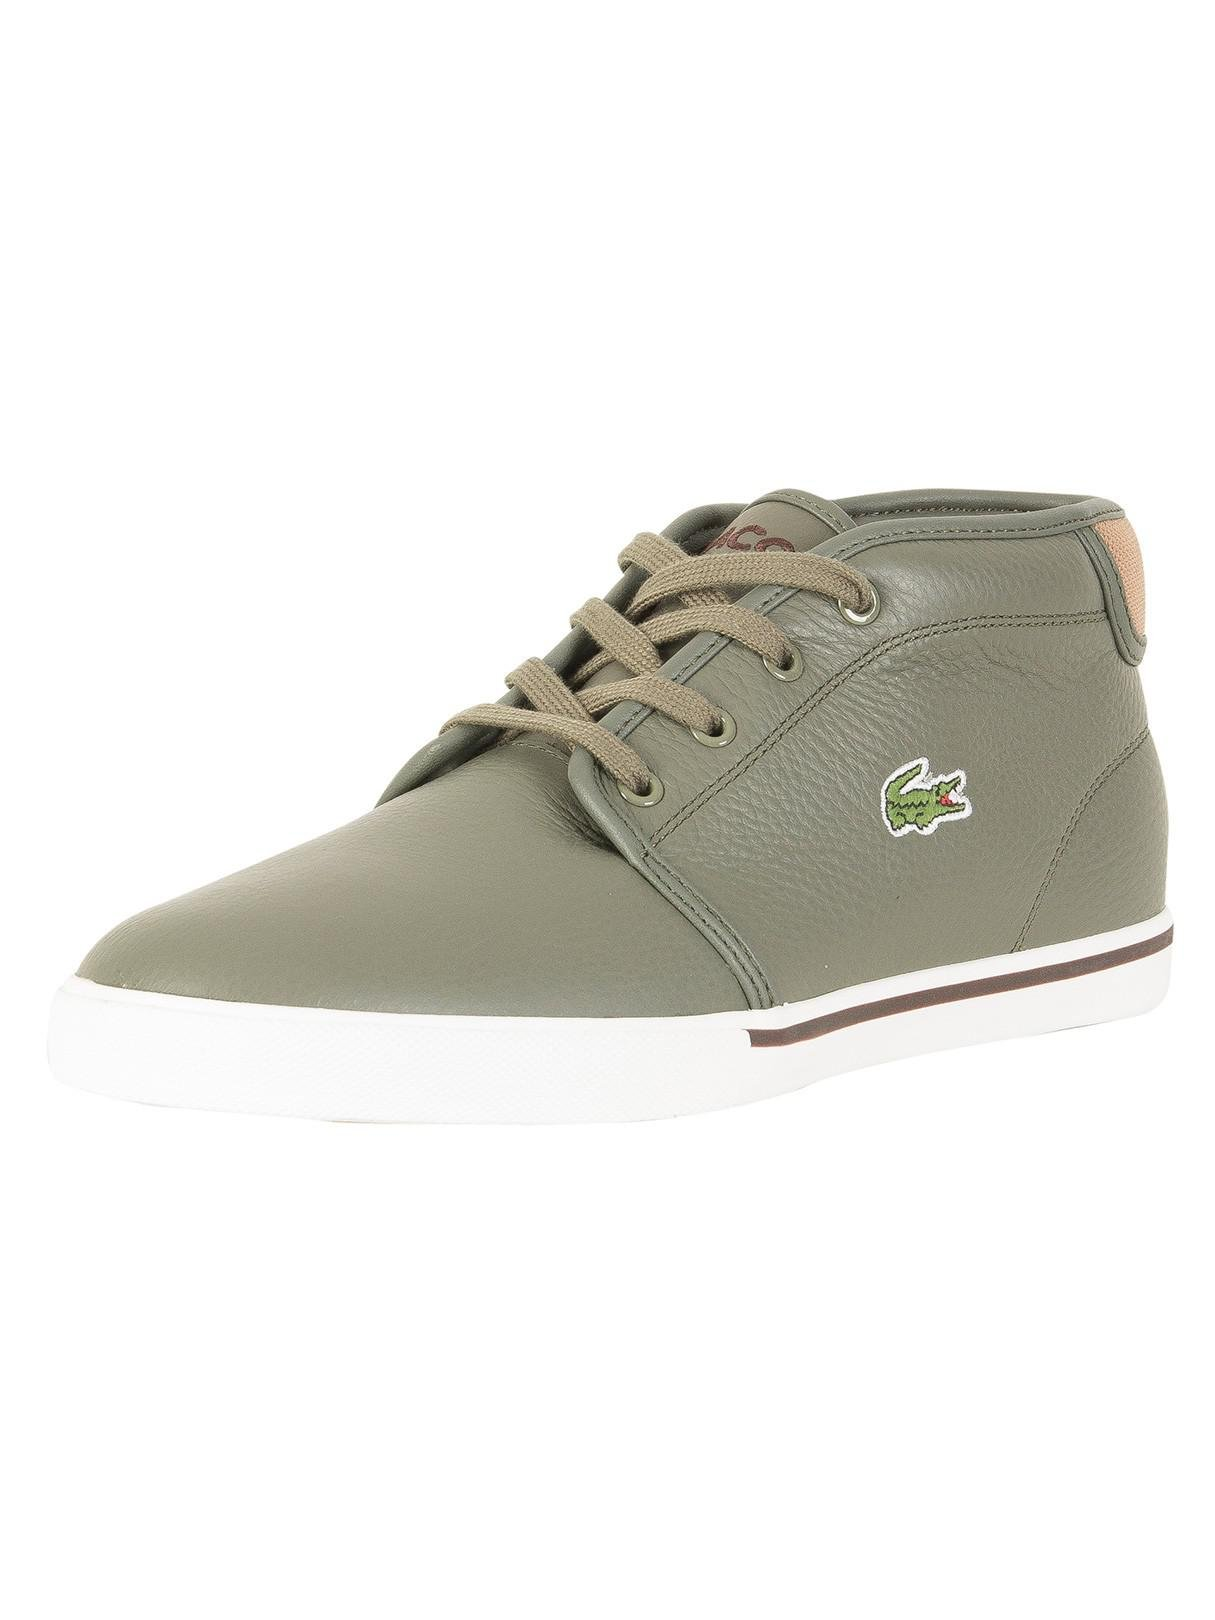 Lacoste Sneakers Ampthill 118 CAM Casual Fashion Shoes Leather Olive Green New